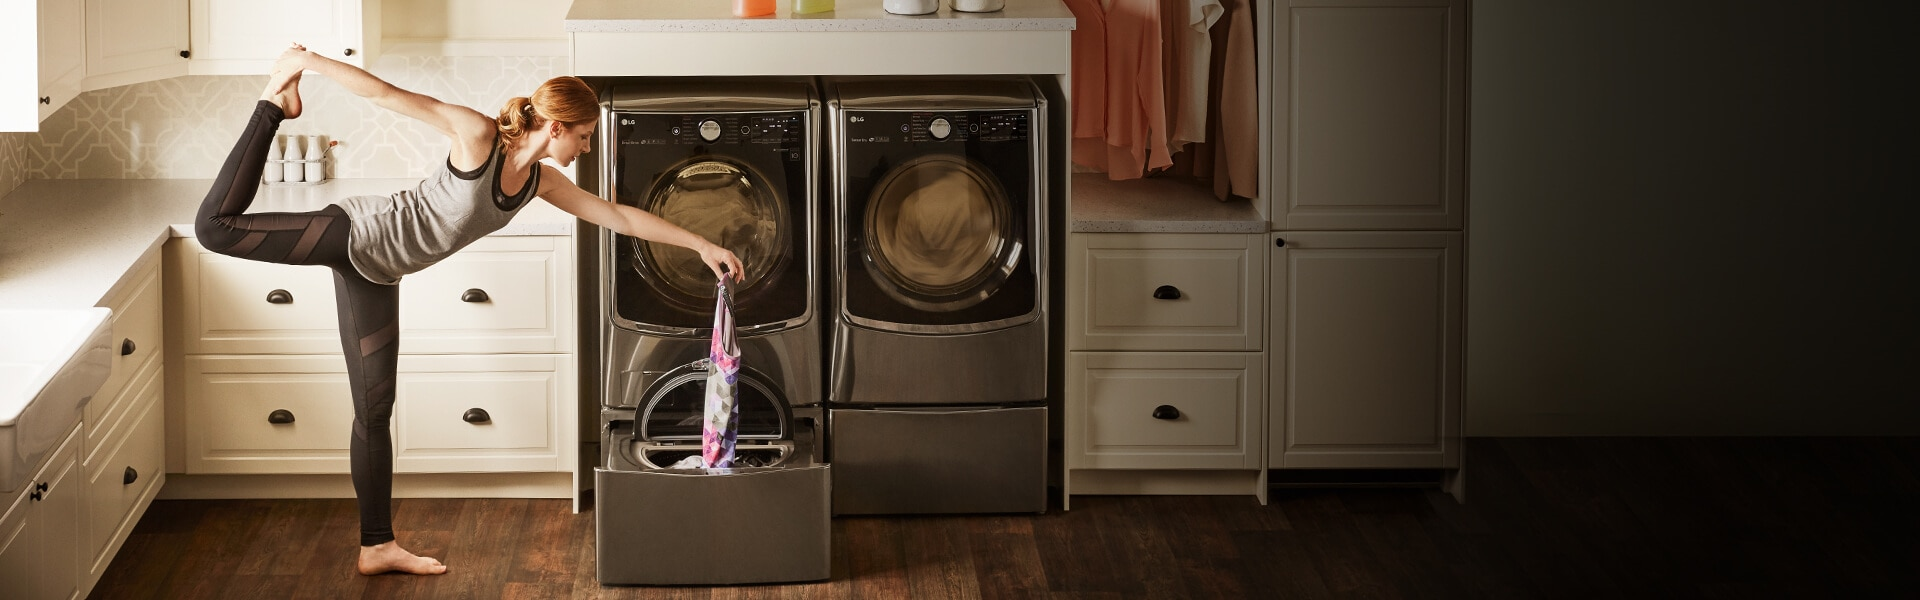 Washer dryer hookups meaning of dreams